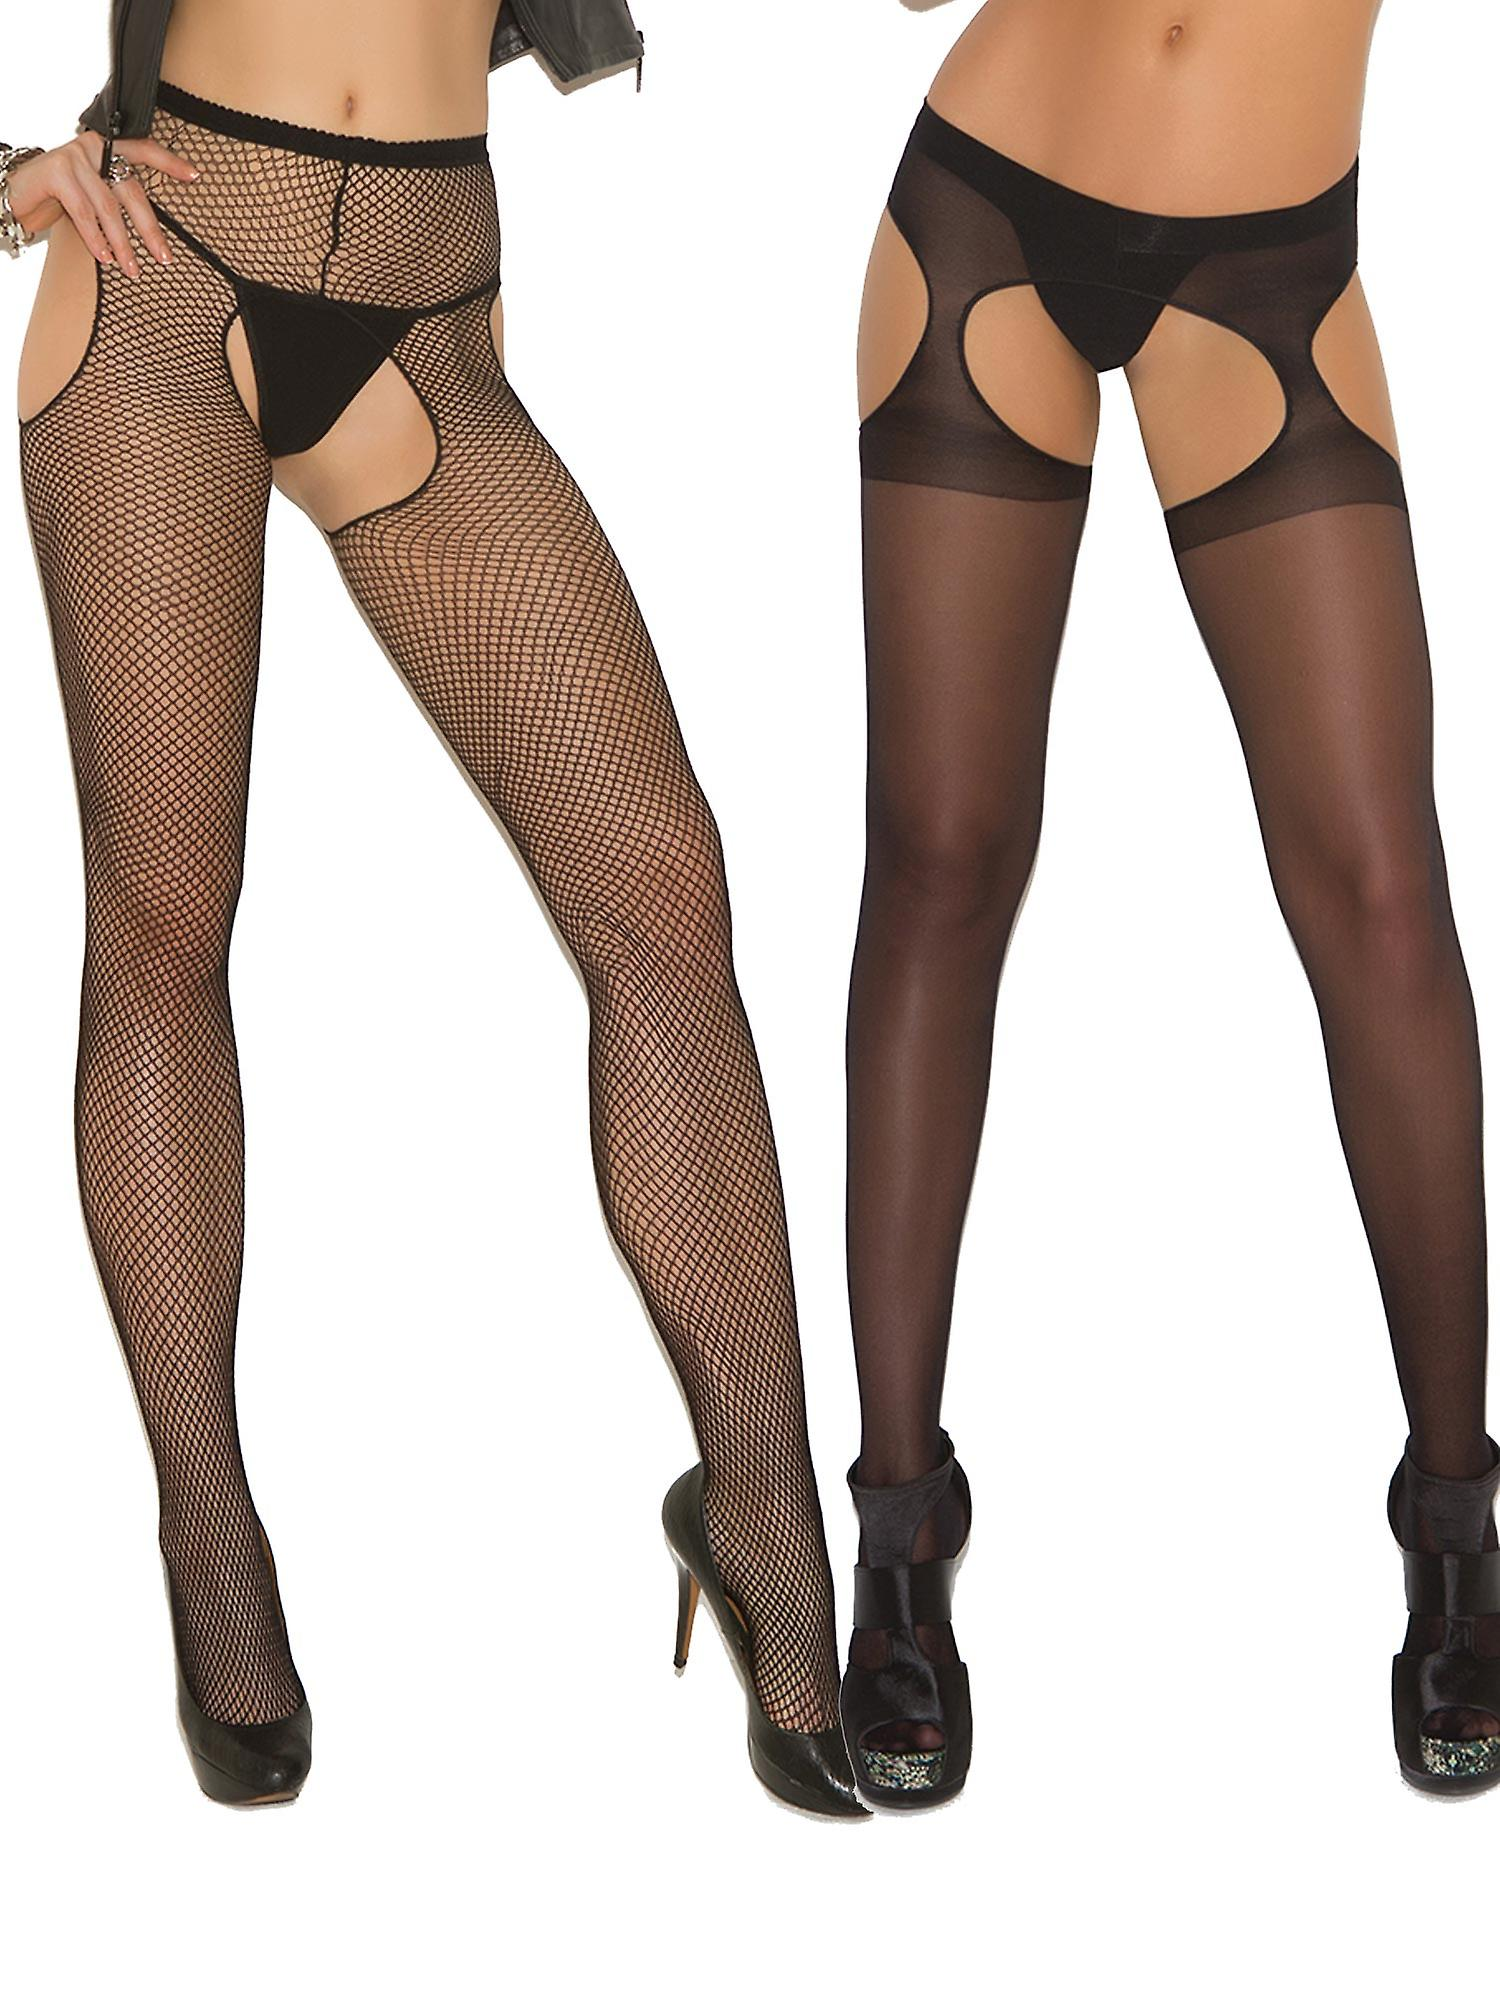 8f402786803 Womens Sexy Sheer Fishnet Crotchless Black Suspender Pantyhose Hosiery  Stockings- 2 Pack